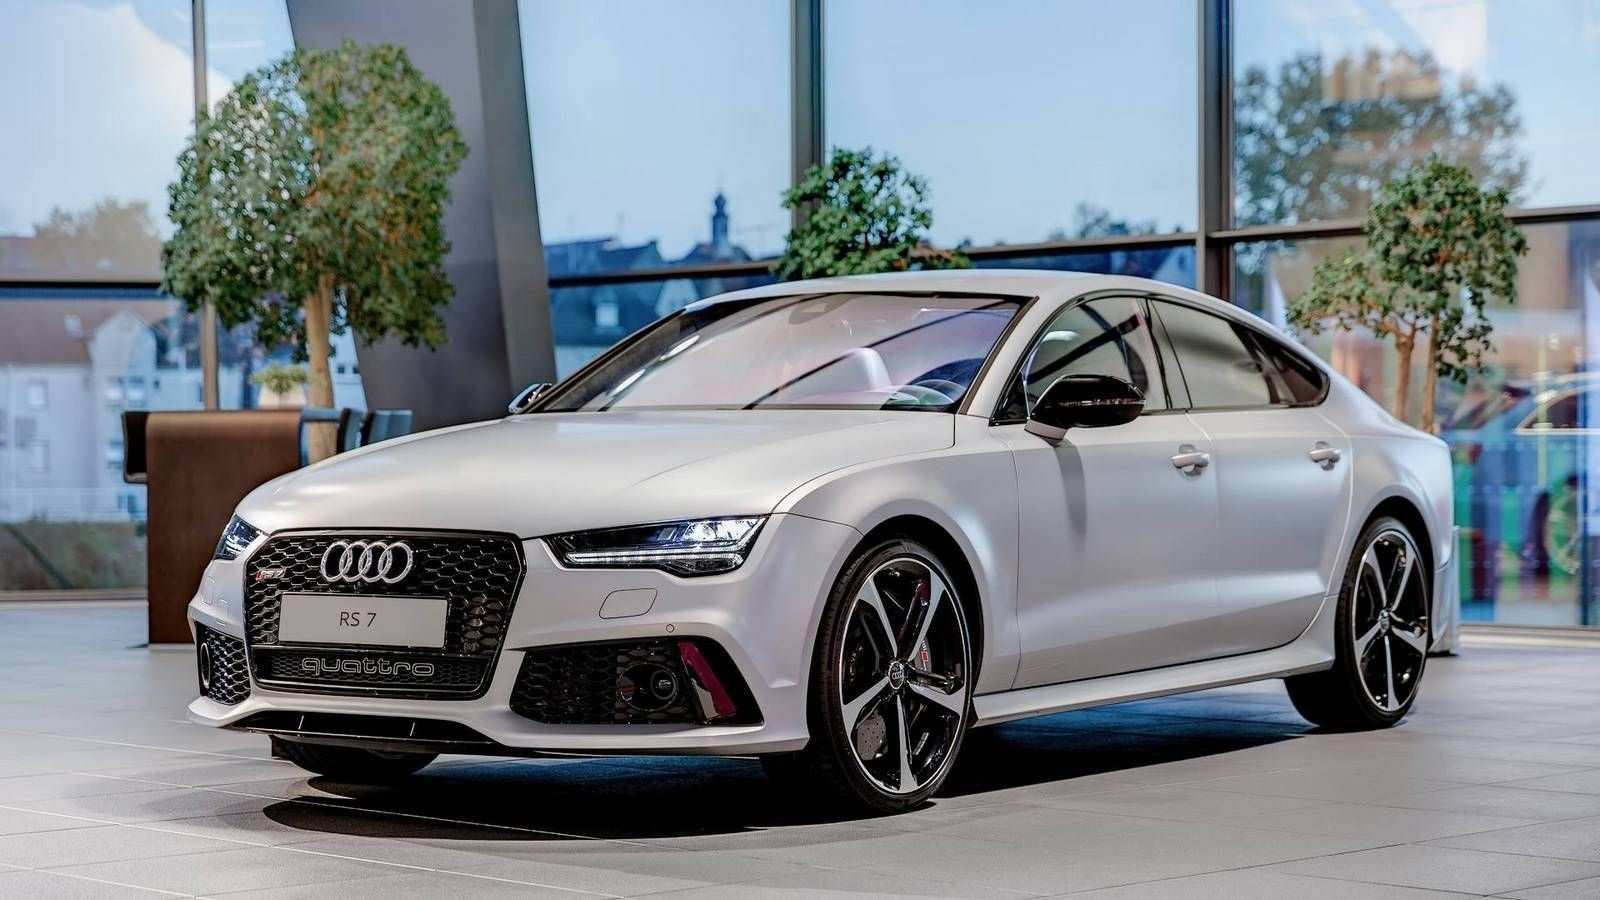 76 The Best 2019 Audi Q8Quotes Images